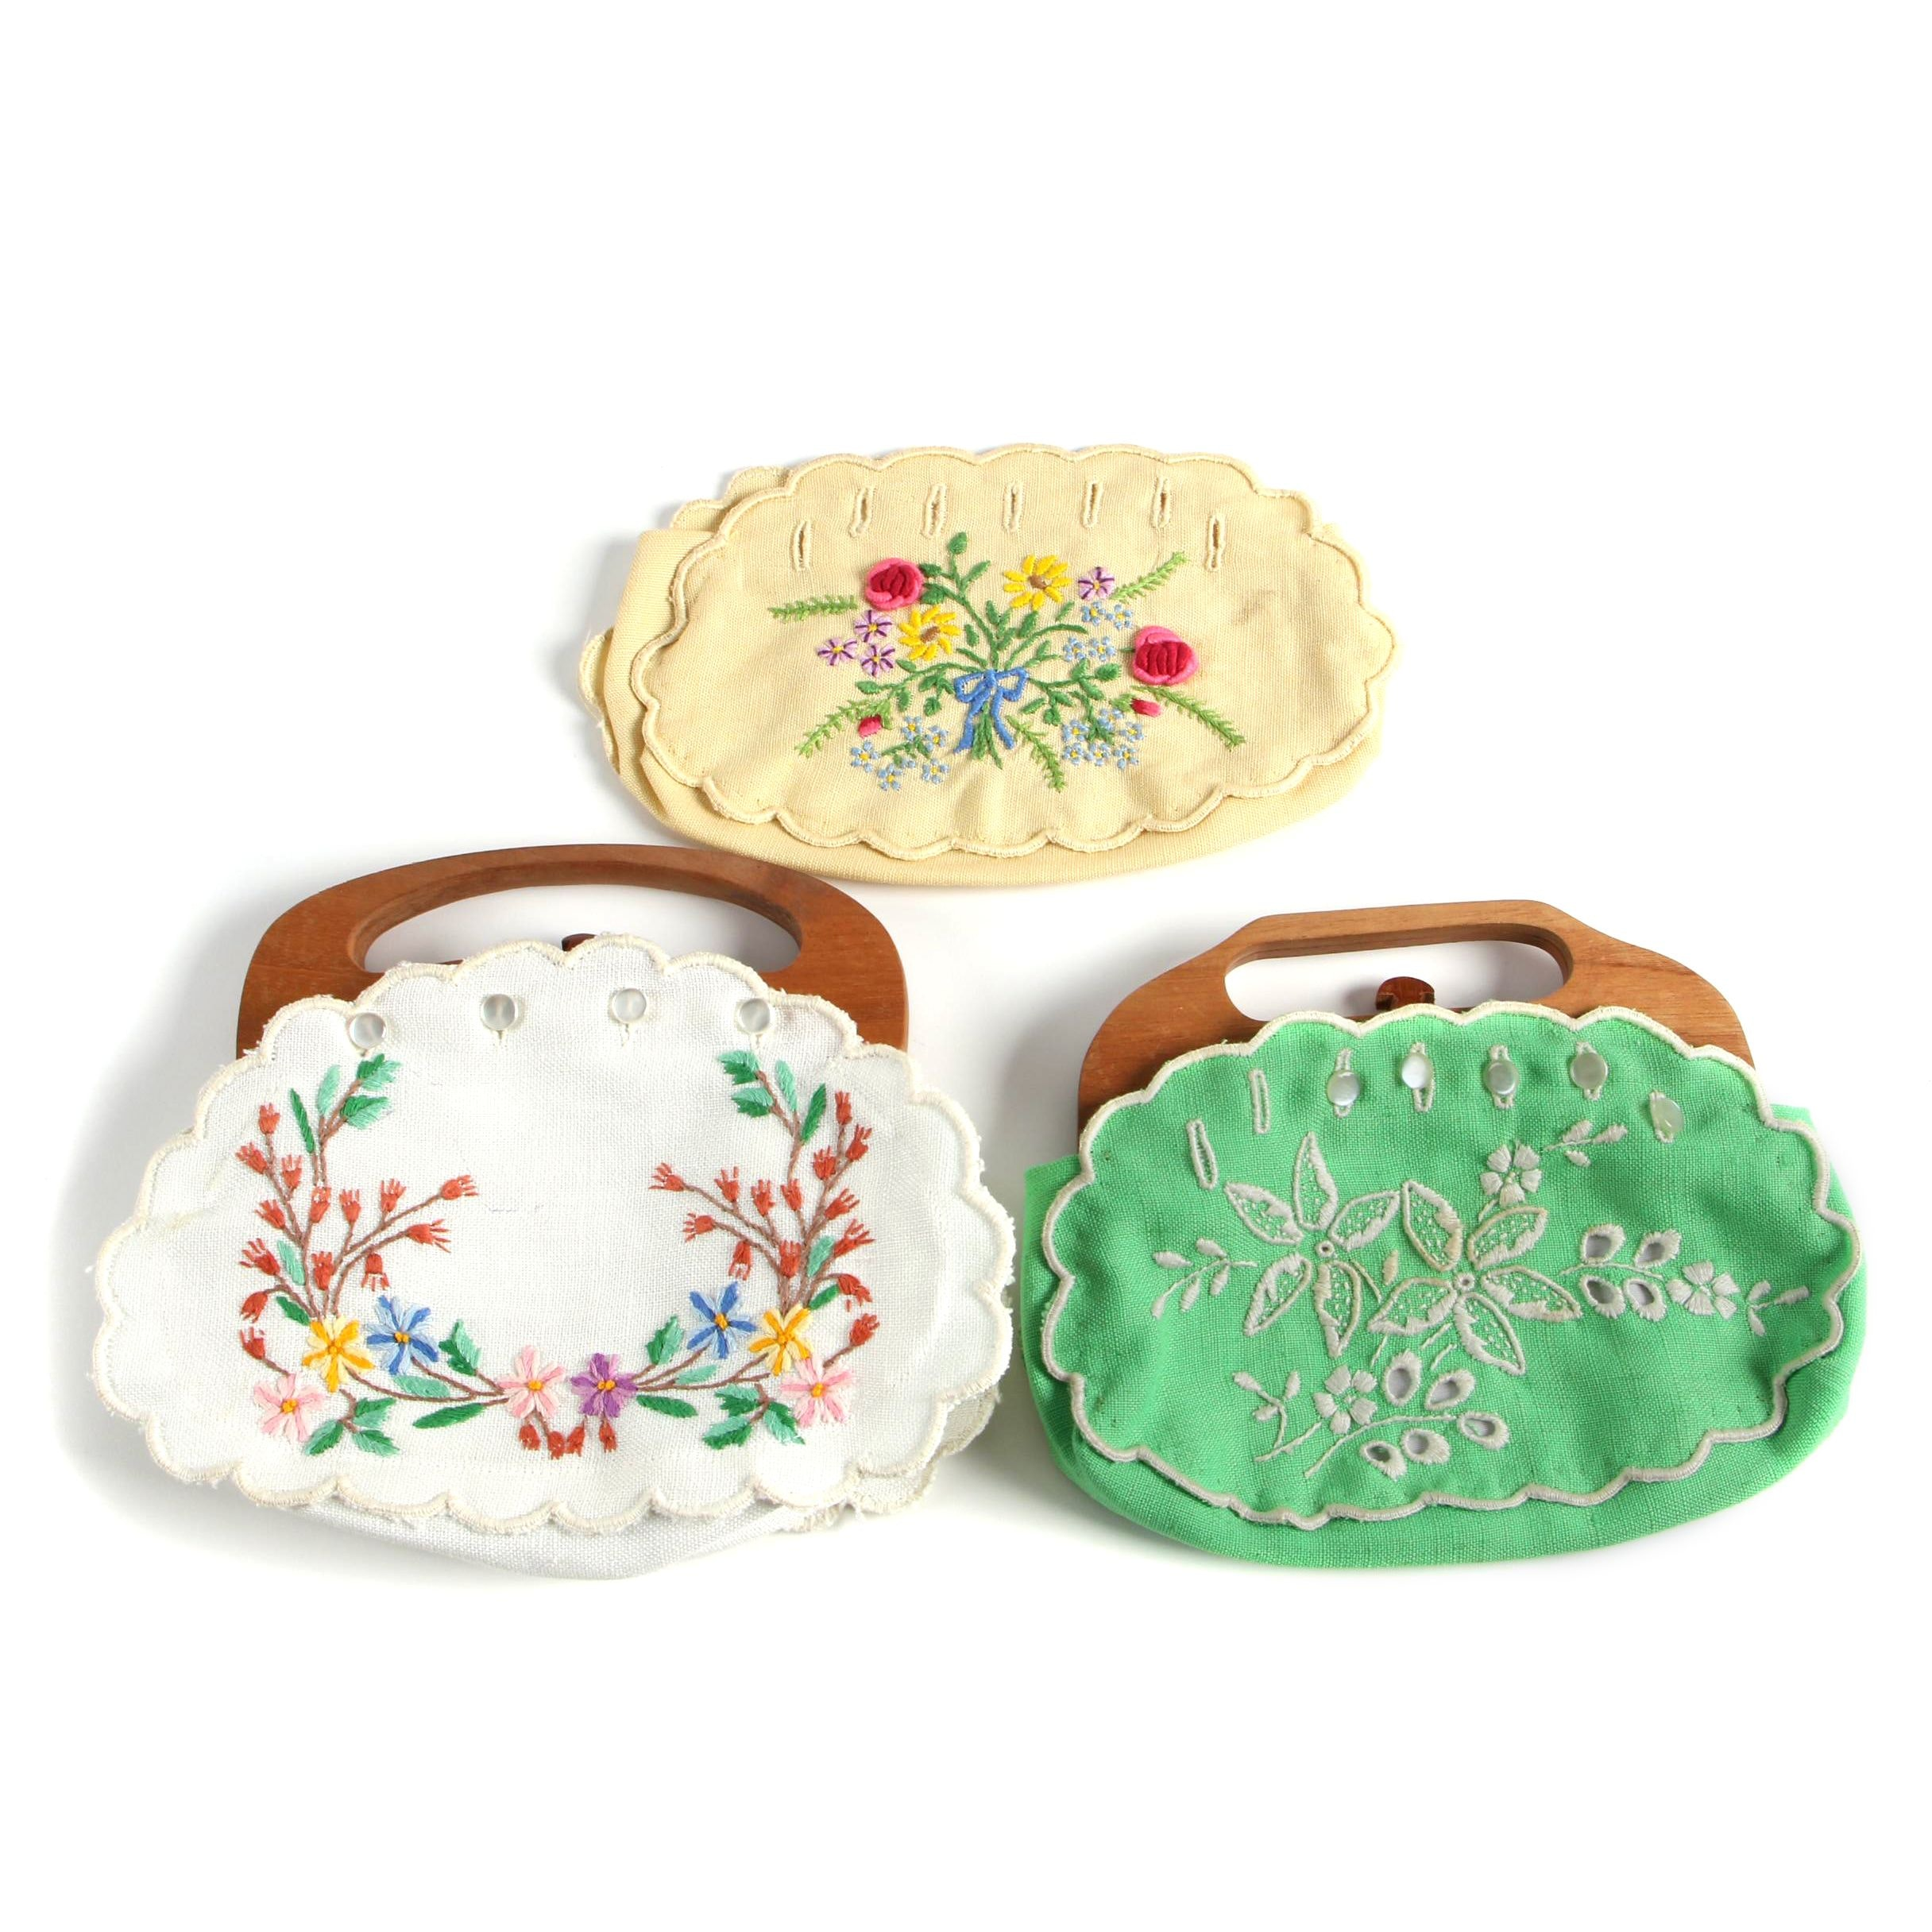 Vintage Wood-Handled Clutches with Interchangeable Embroidered Covers